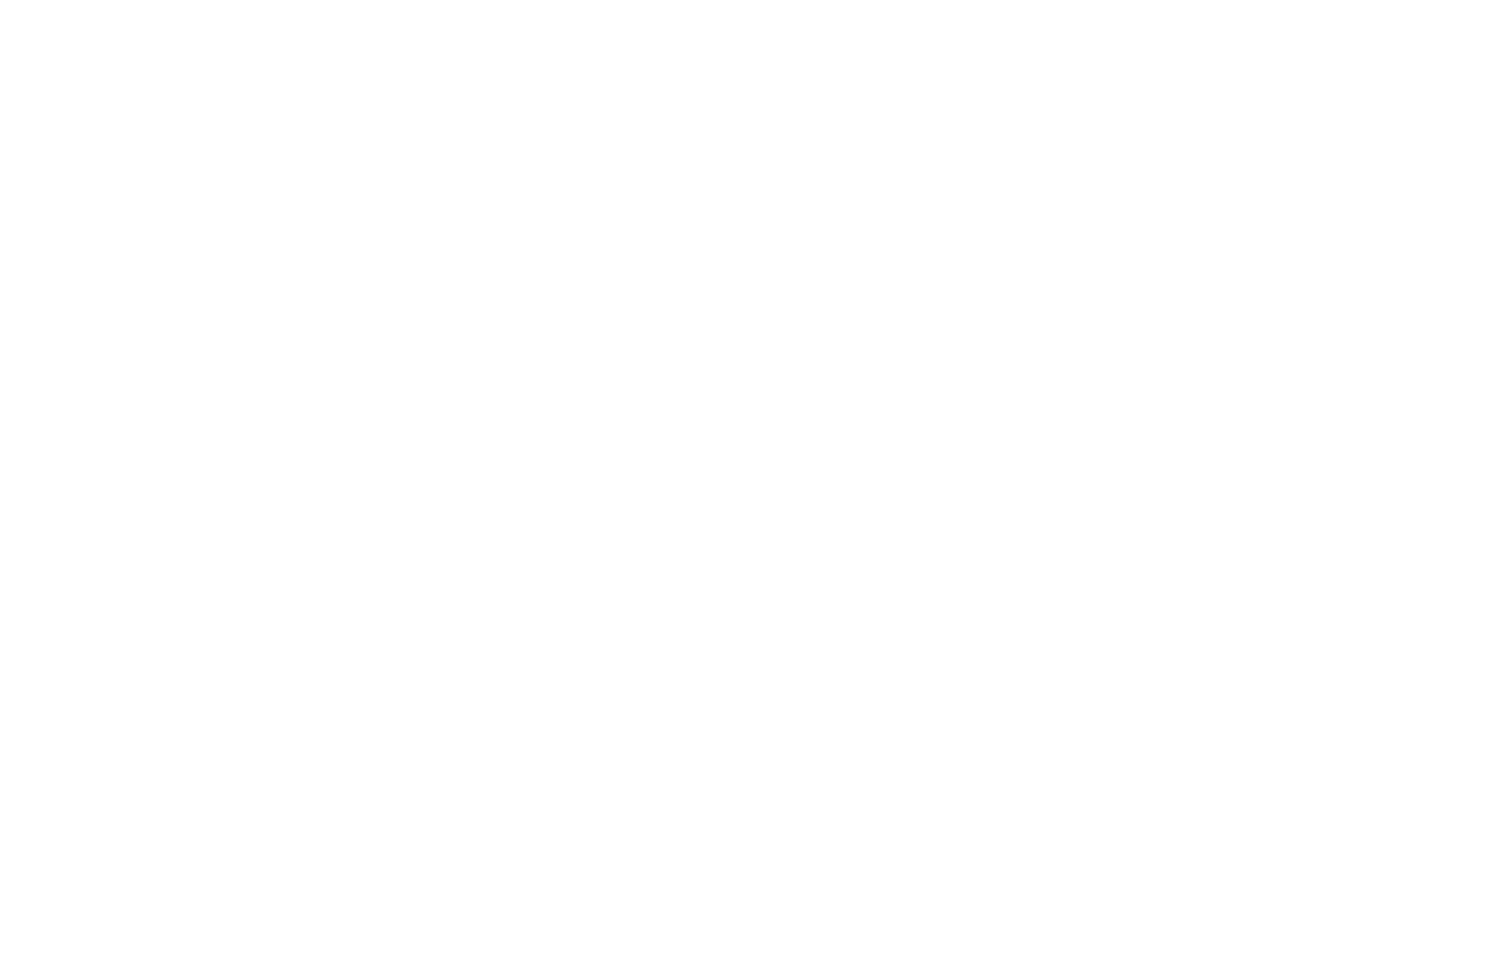 accionrepublicana